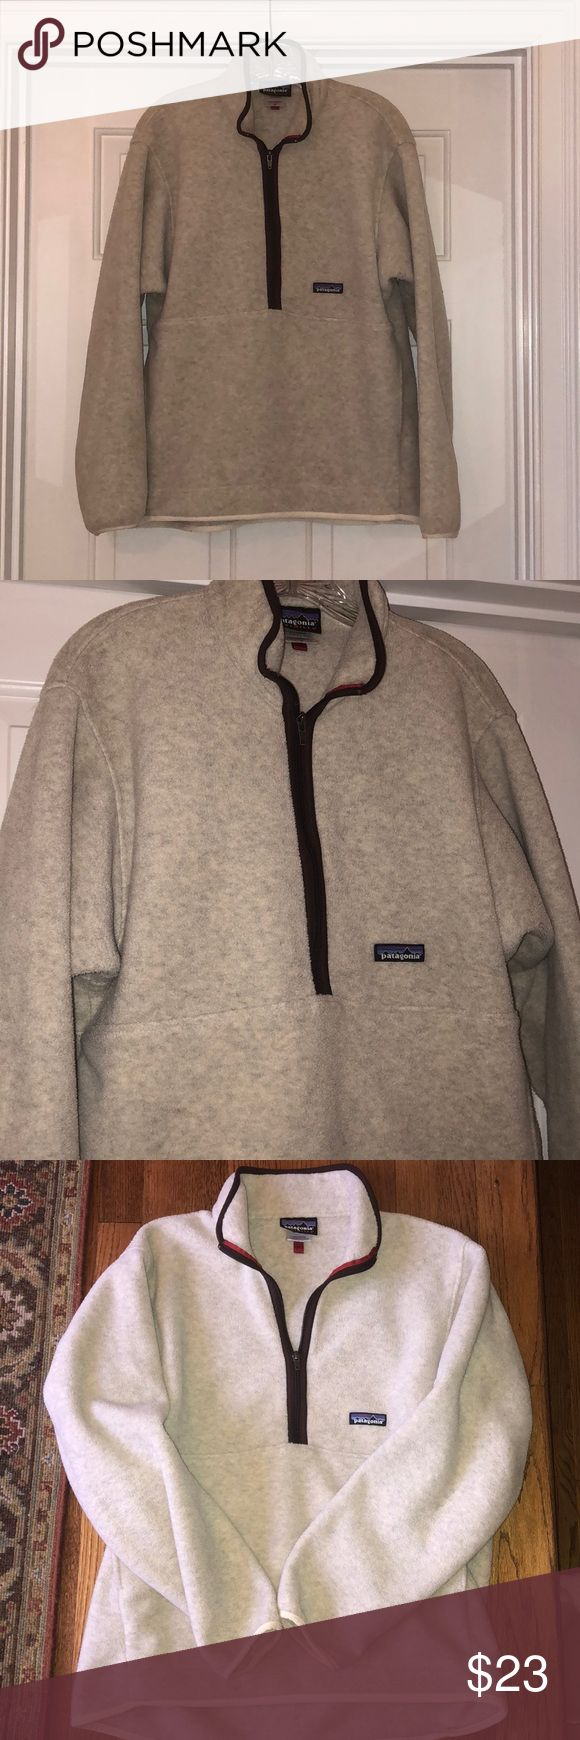 "Patagonia Fleece Pullover SZ M GUC. This is still in awesome condition - no stains or tears. Zipper works great! Beautiful neutral sand color. This is a unisex Medium— I'm 5'10"" and it fit great! Patagonia Tops Sweatshirts & Hoodies"